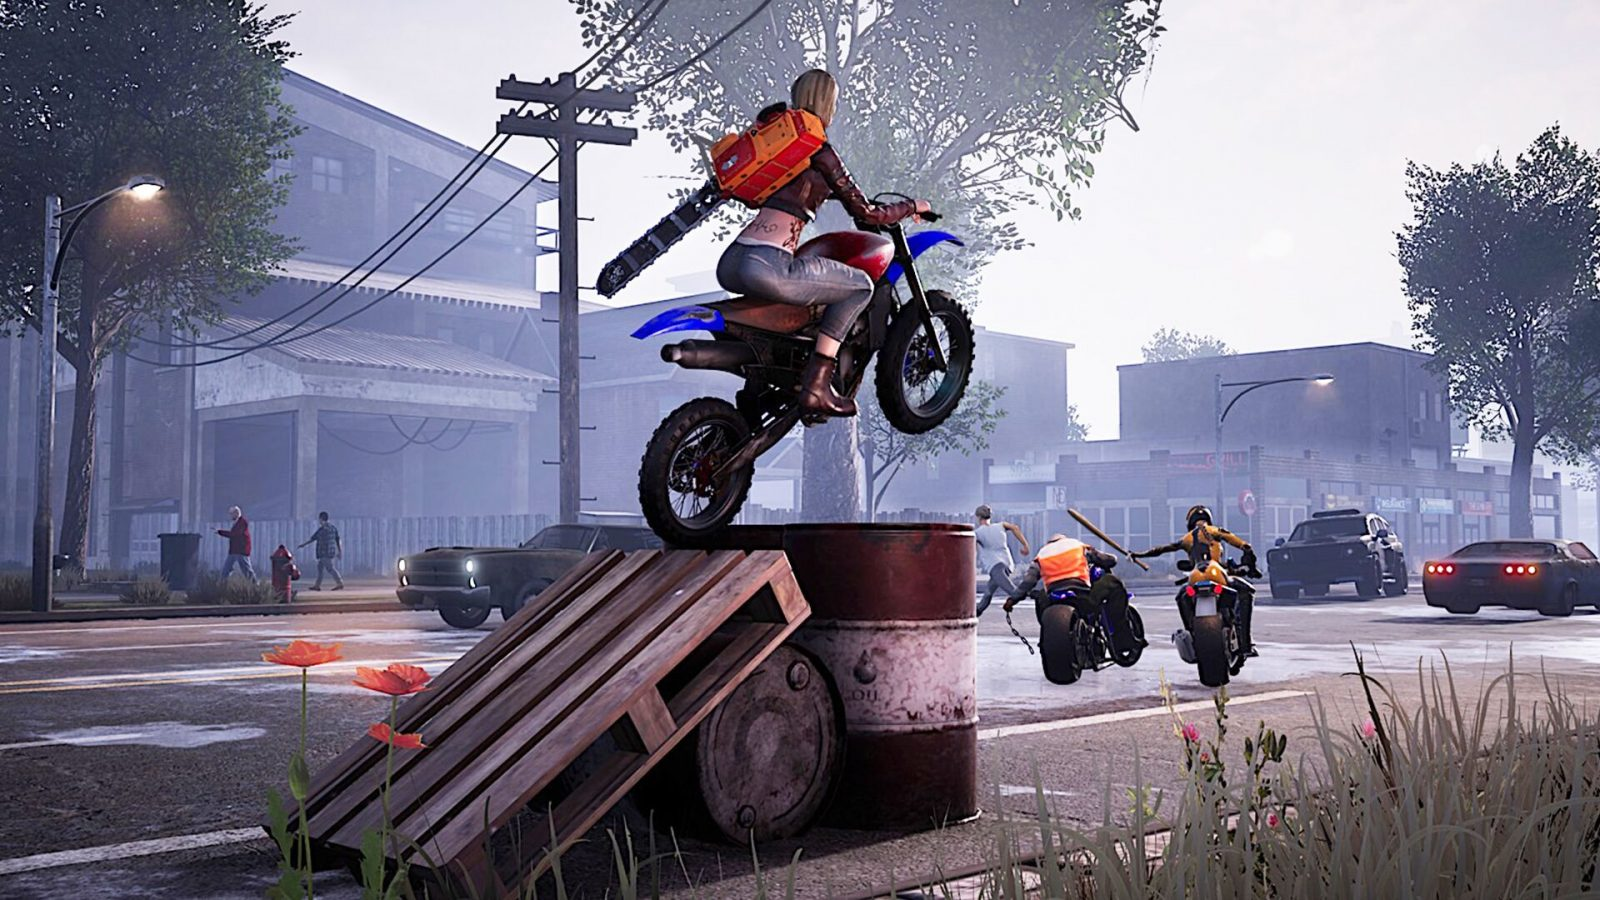 road rage 3 Road rage is an over-the-top, knock-down-drag-out motorcycle combat game that tests your skill on a range of badass bikes race, fight, and hustle your way through.